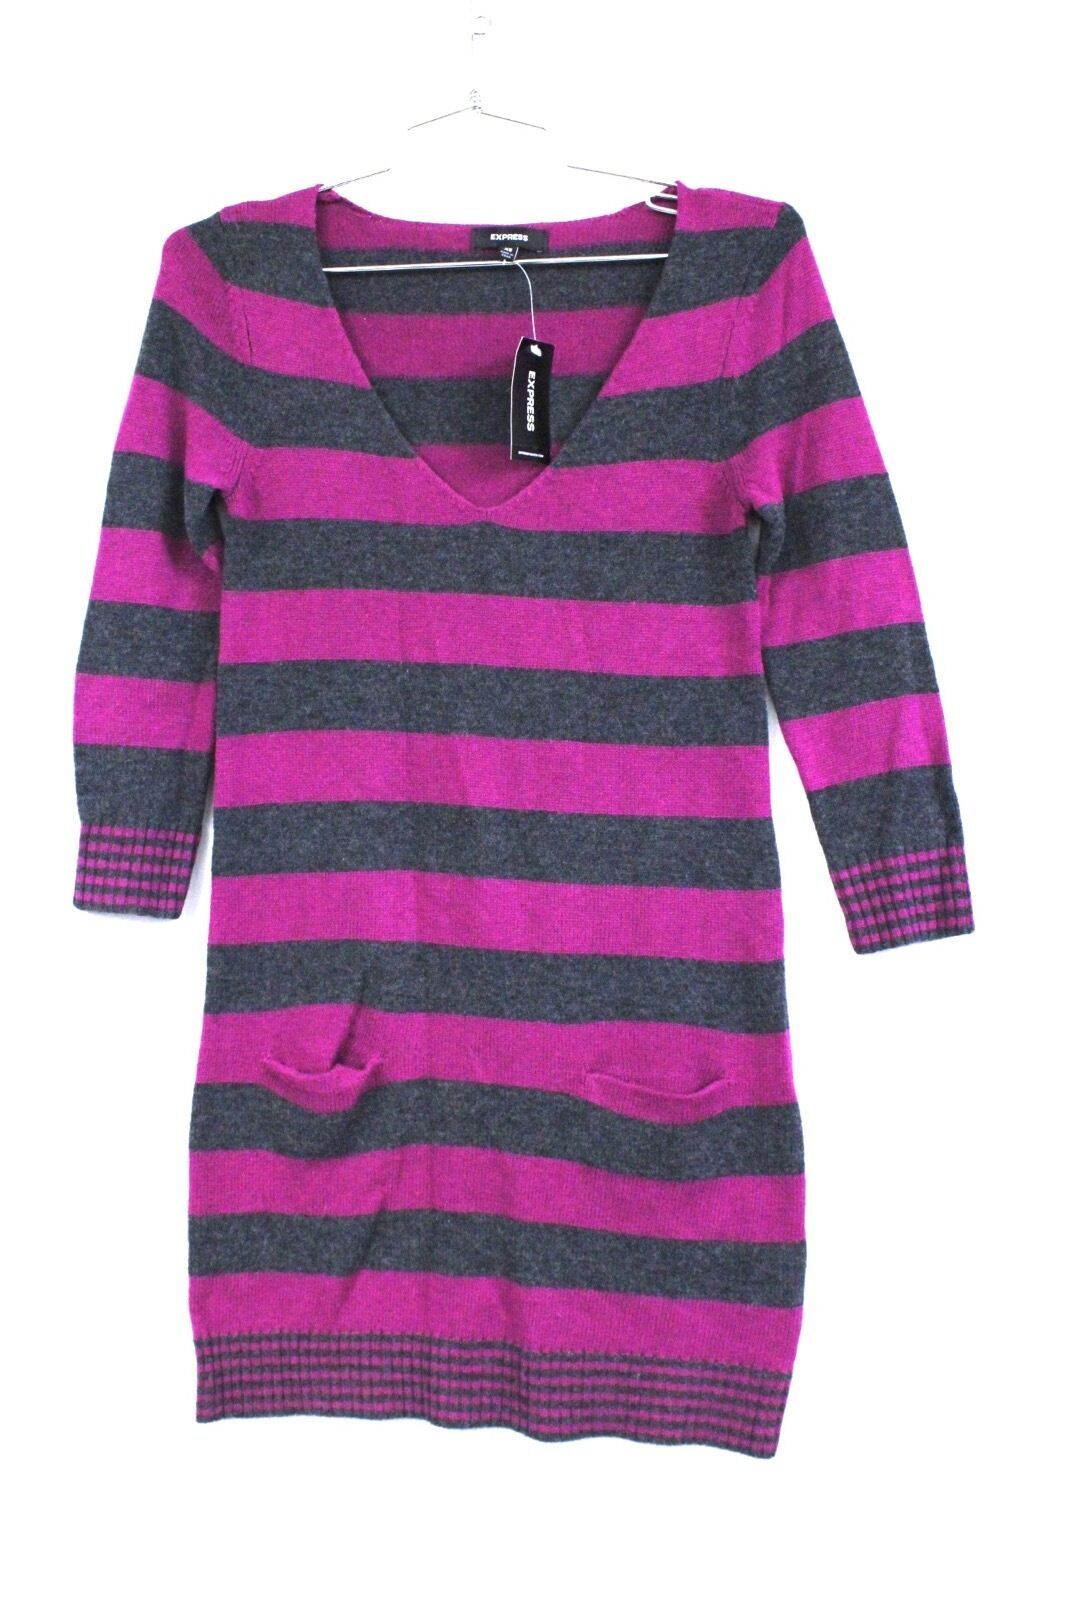 Primary image for Express Striped Sweater Dress Tunic sz XS V-neck LS Deep Pink Gray NWT $69.50